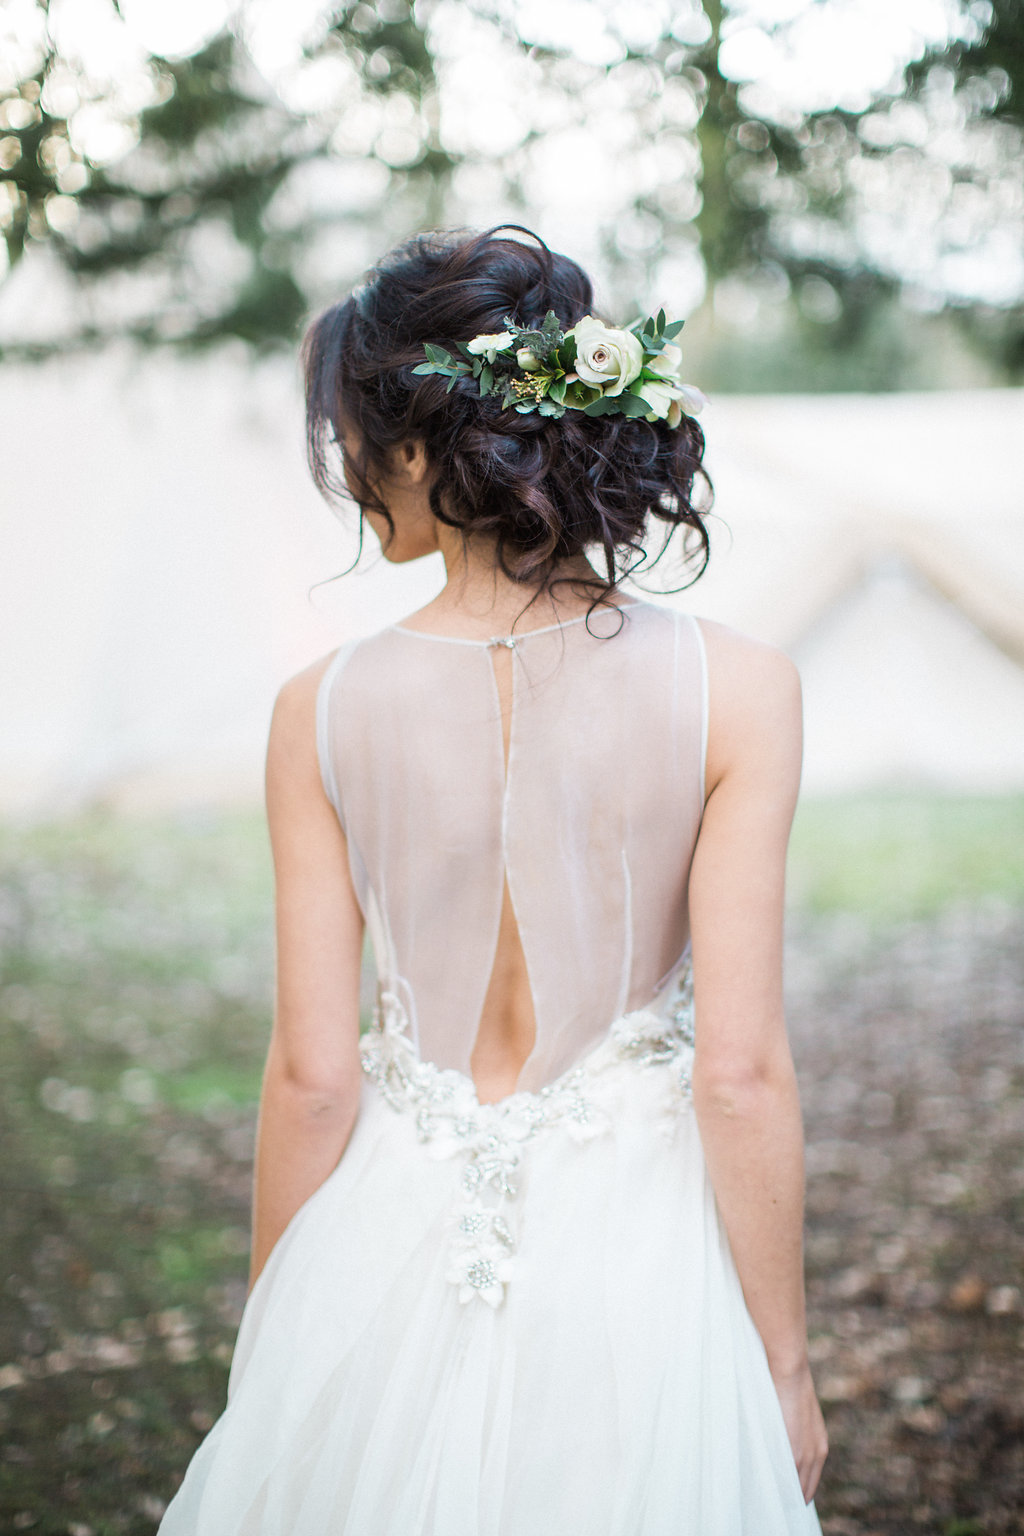 A messy updo looks great for a woodland wedding